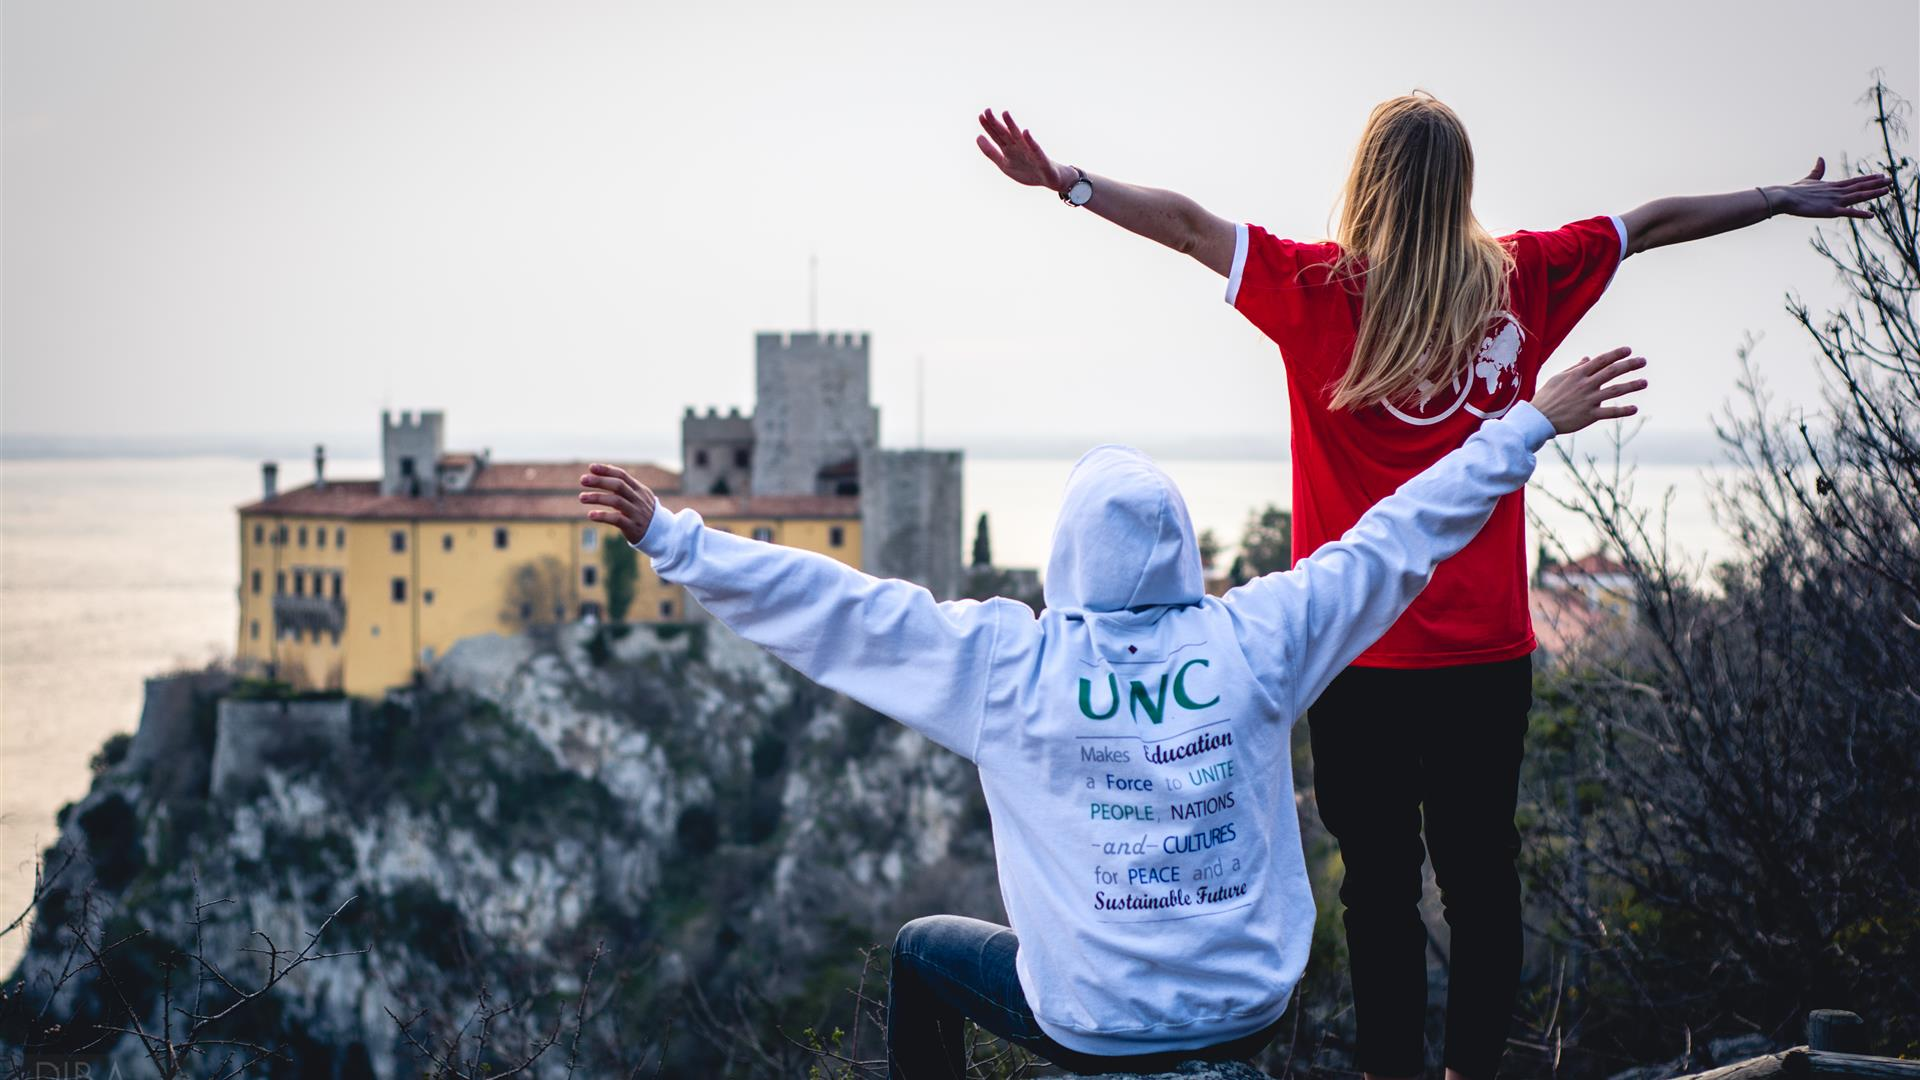 ULTIMATE INTERVIEW/SELECTION WEEKEND GUIDE – TIPS FOR THE UWC APPLICATION PROCESS